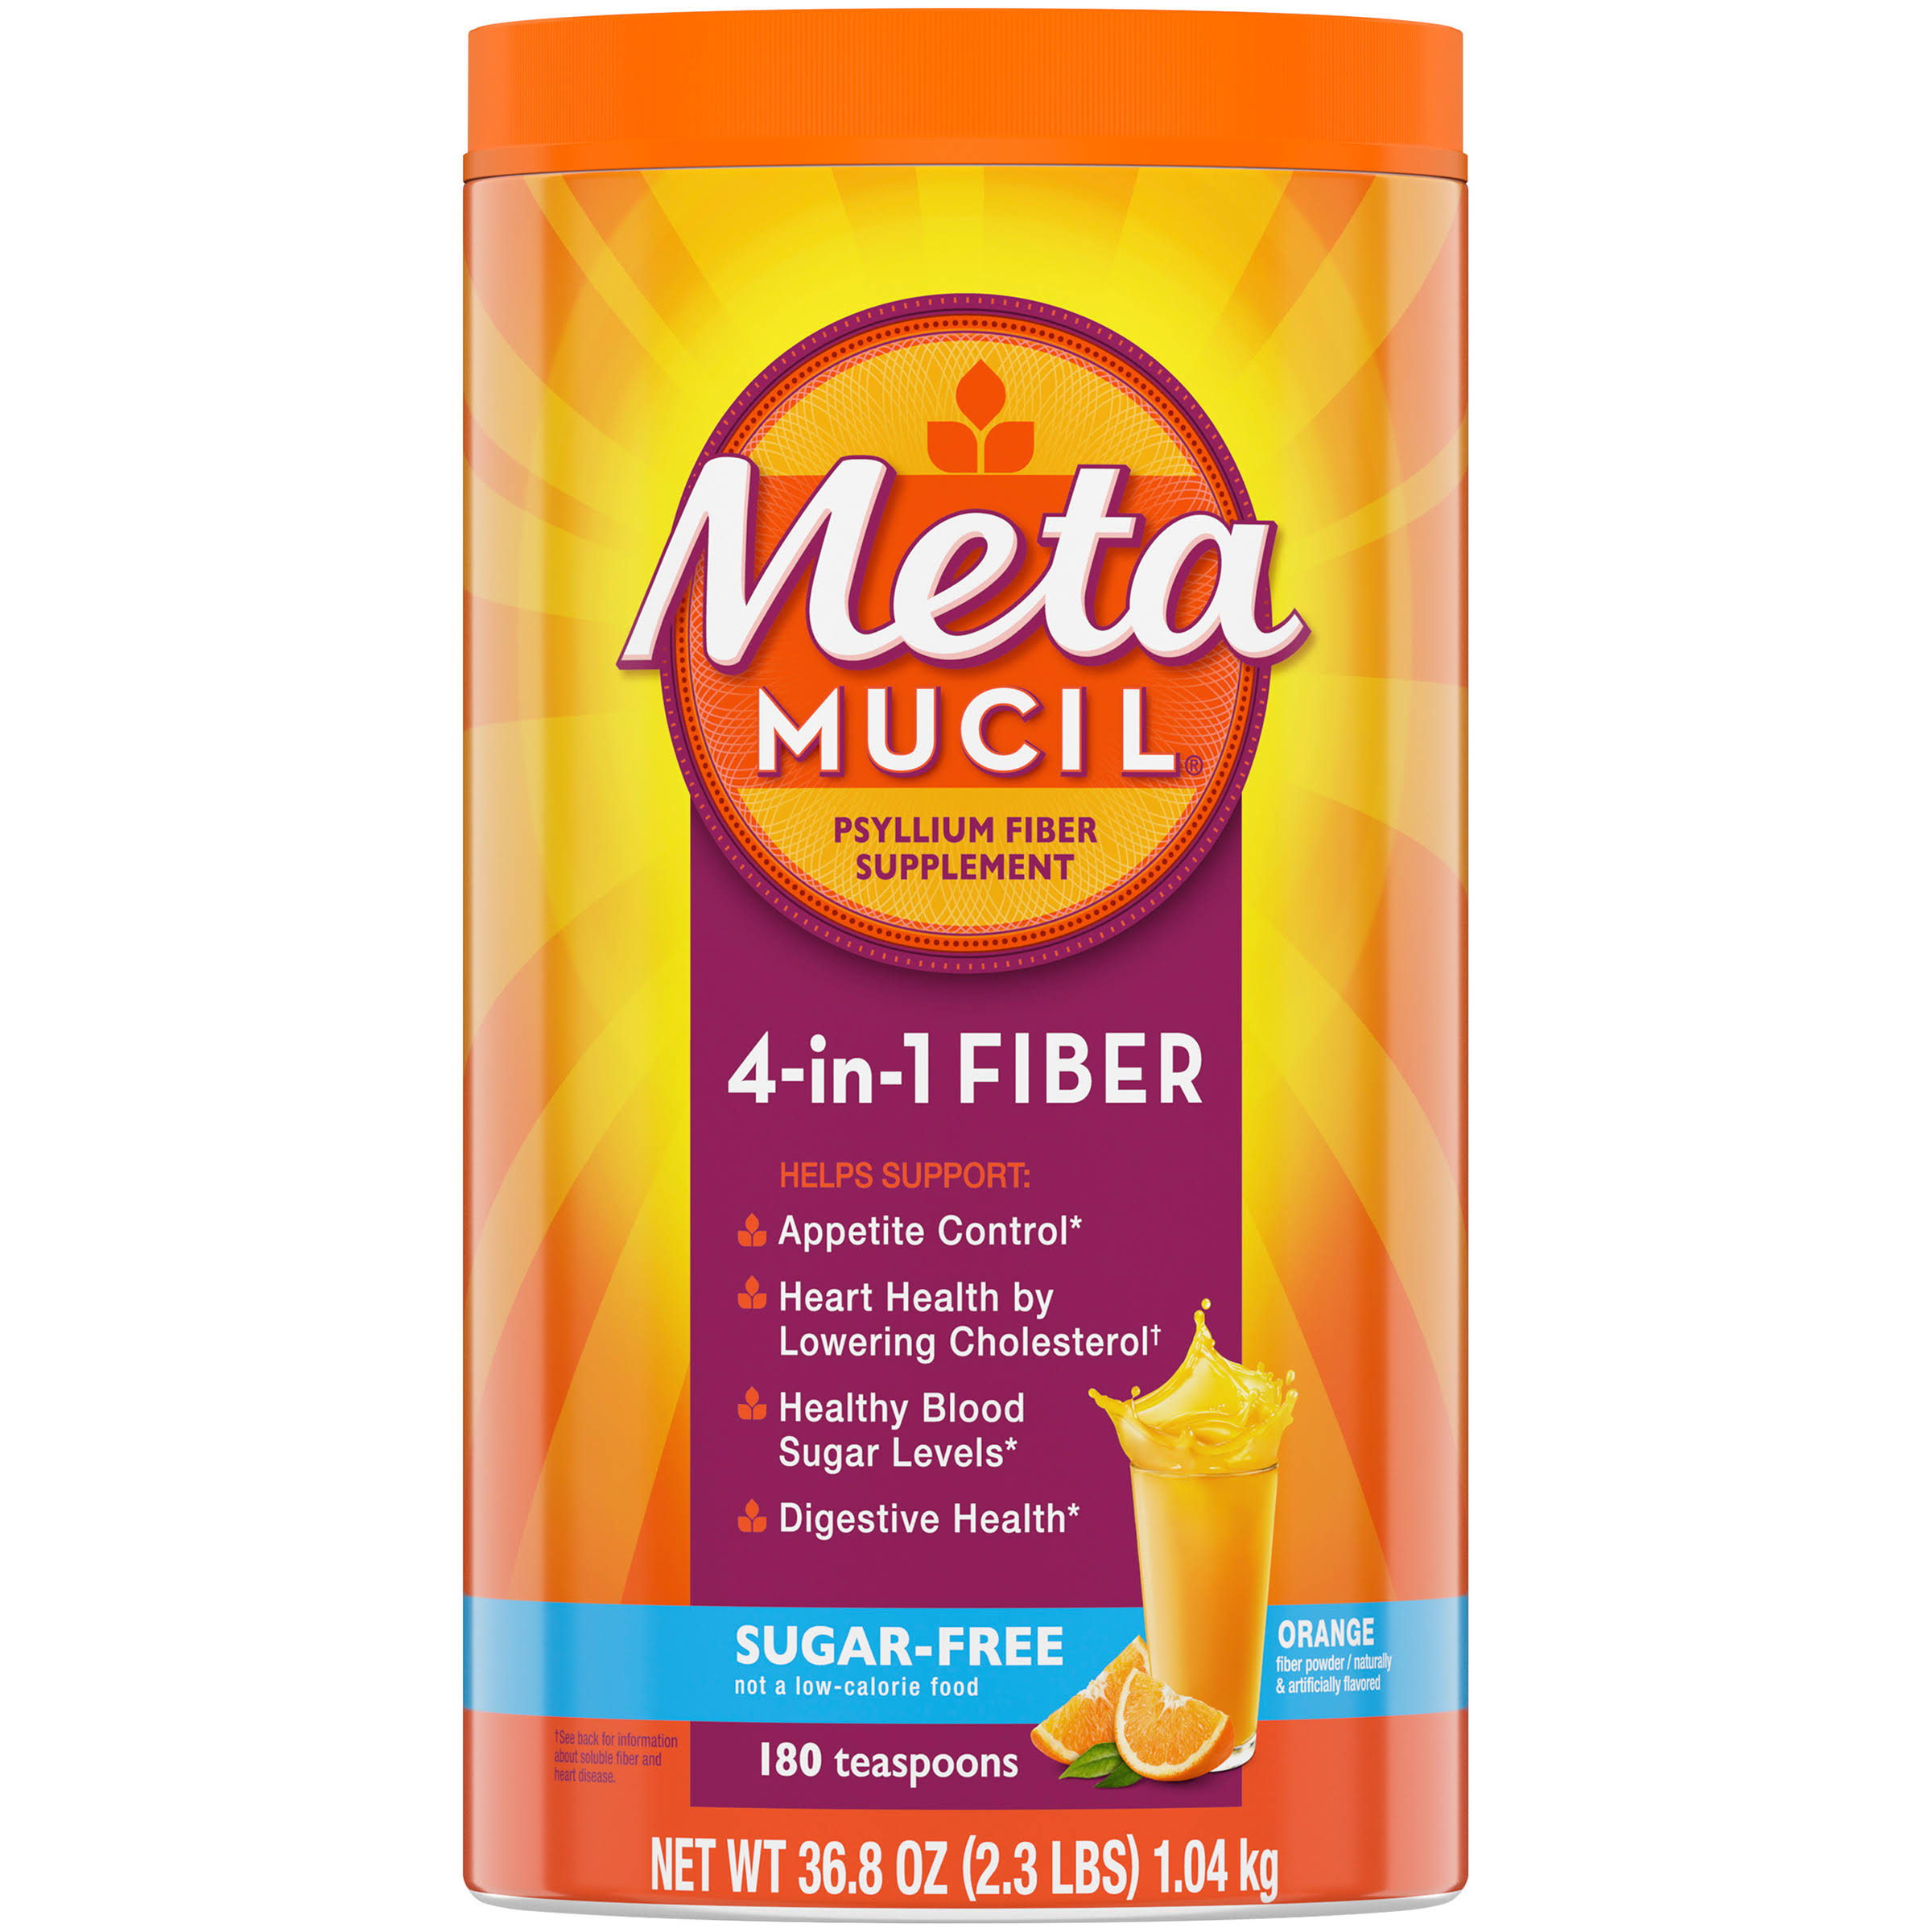 Metamucil Psyllium Fiber Dietary Supplement - Orange Smooth, 36.8oz